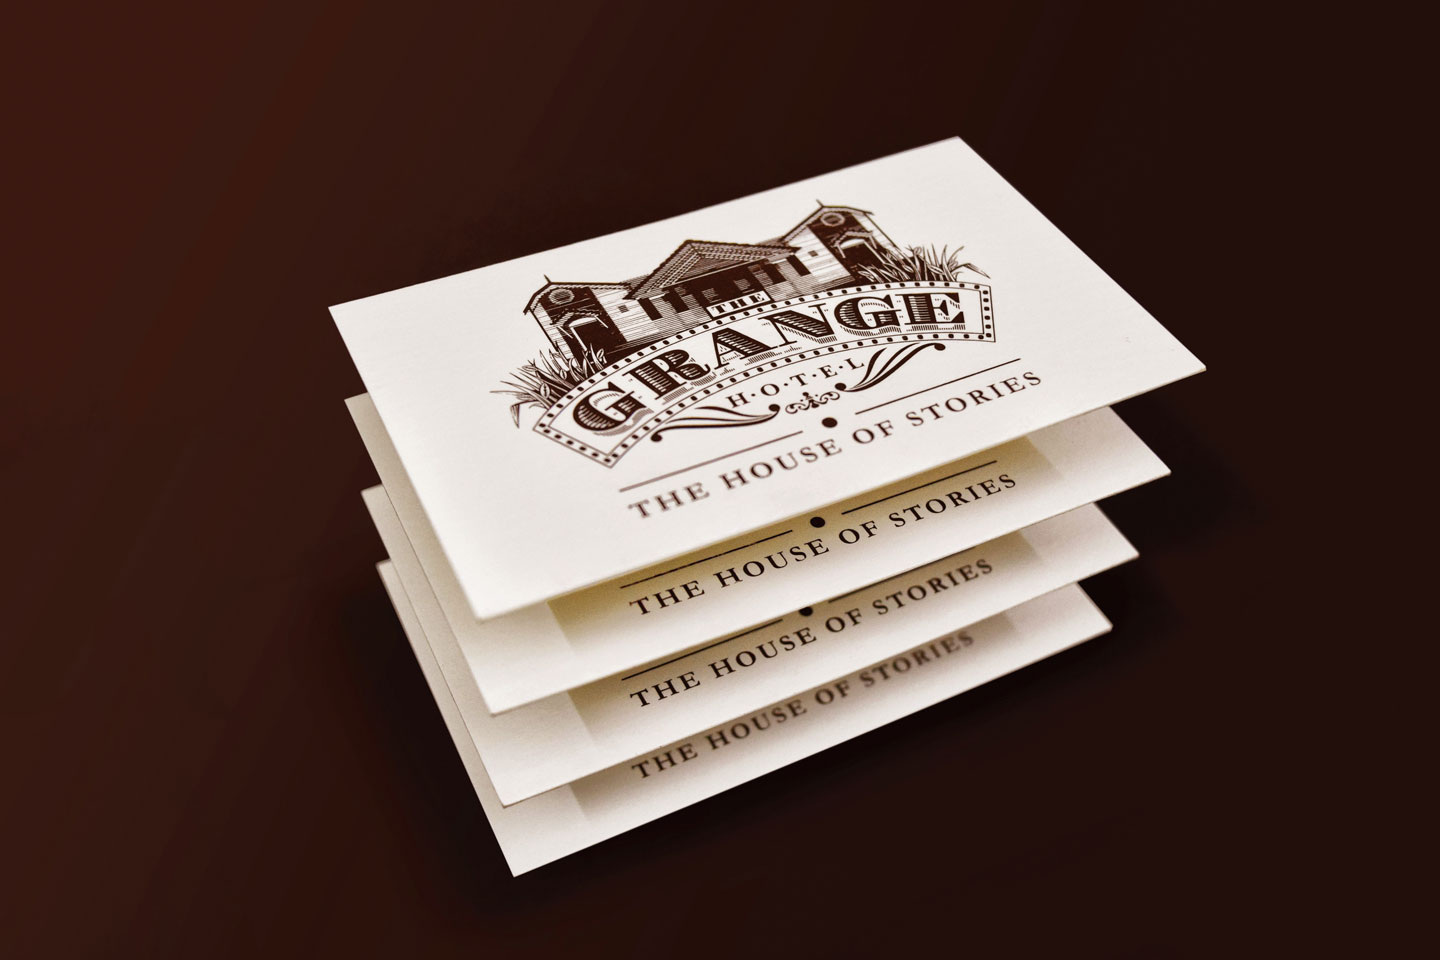 The business card of the grange hotel ooty with it's logo and logo type on it.